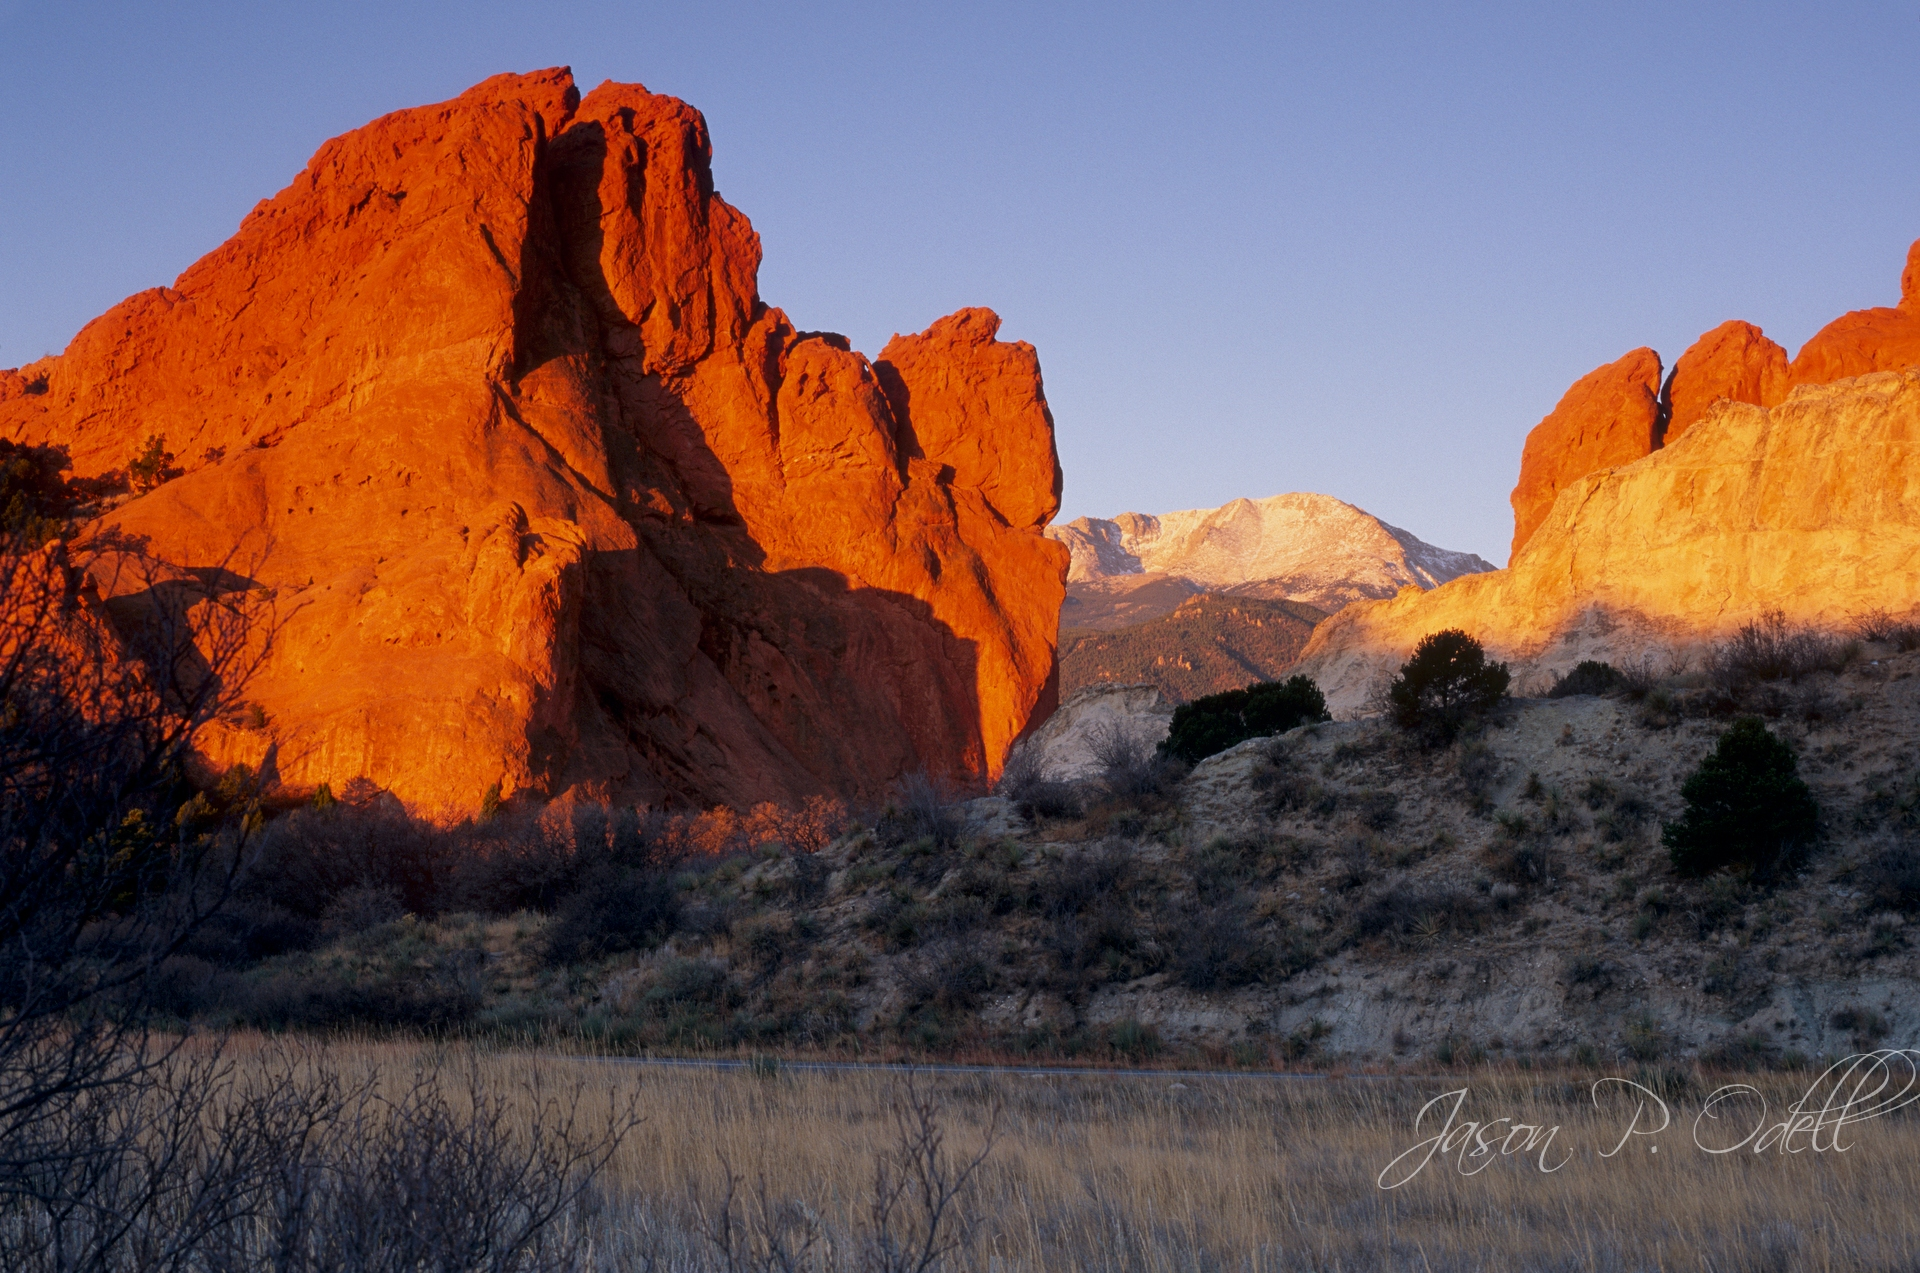 Garden of the Gods & Pikes Peak, captured with Fujichrome Velvia 50 film.